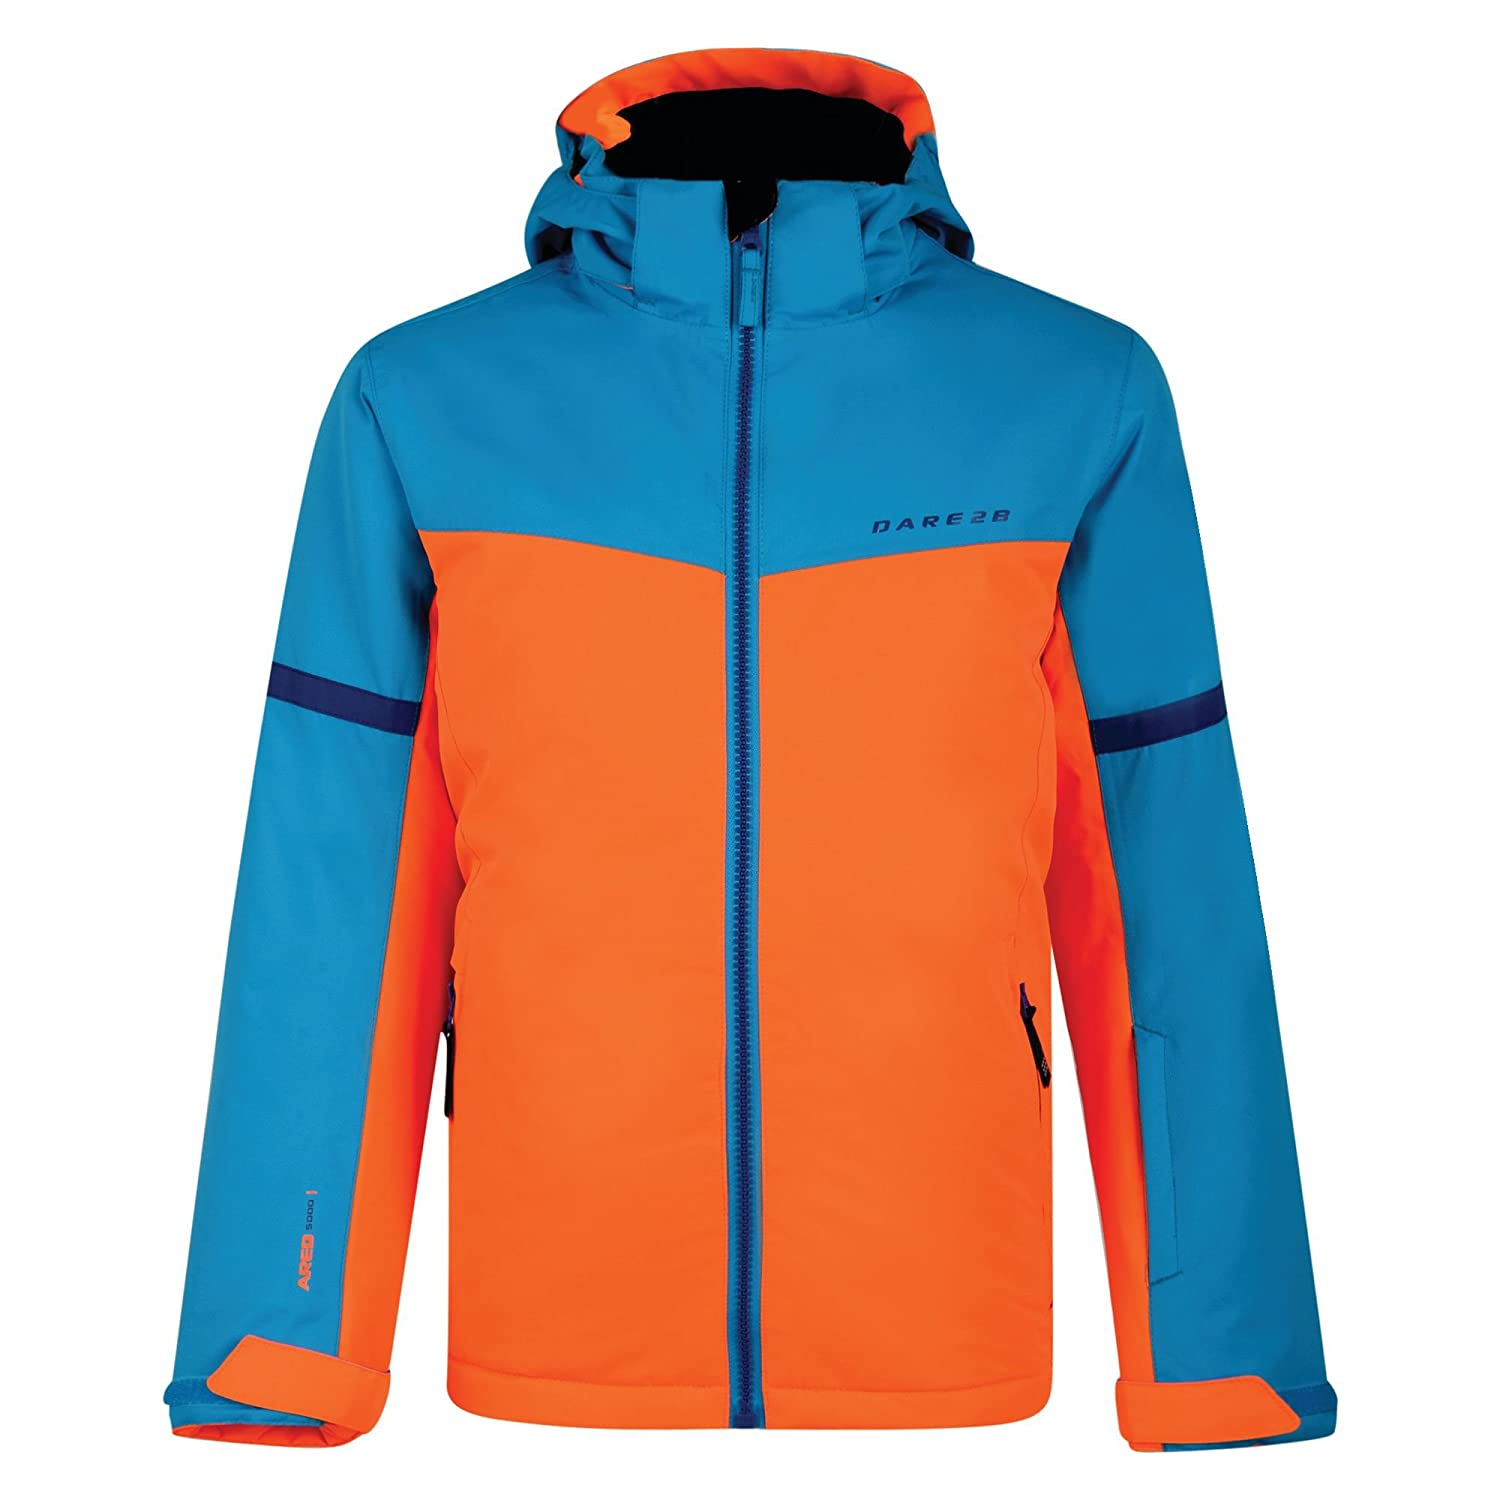 Dare 2b Boys & Girls Obscure Insulated Waterproof Breathable Jacket Top